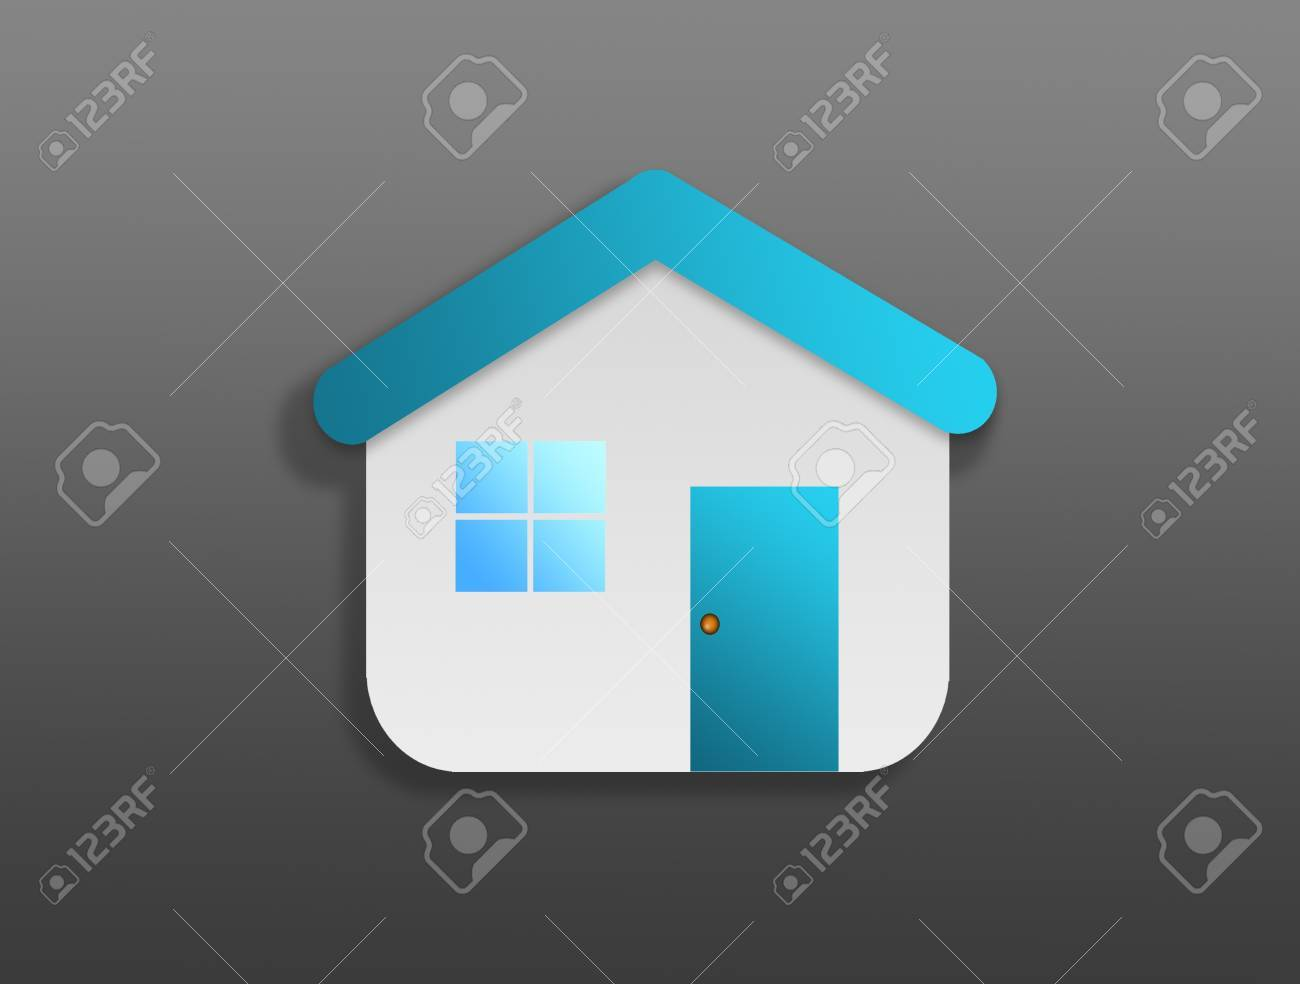 Blue house symbol over gray background.Family concept Stock Photo - 9314583